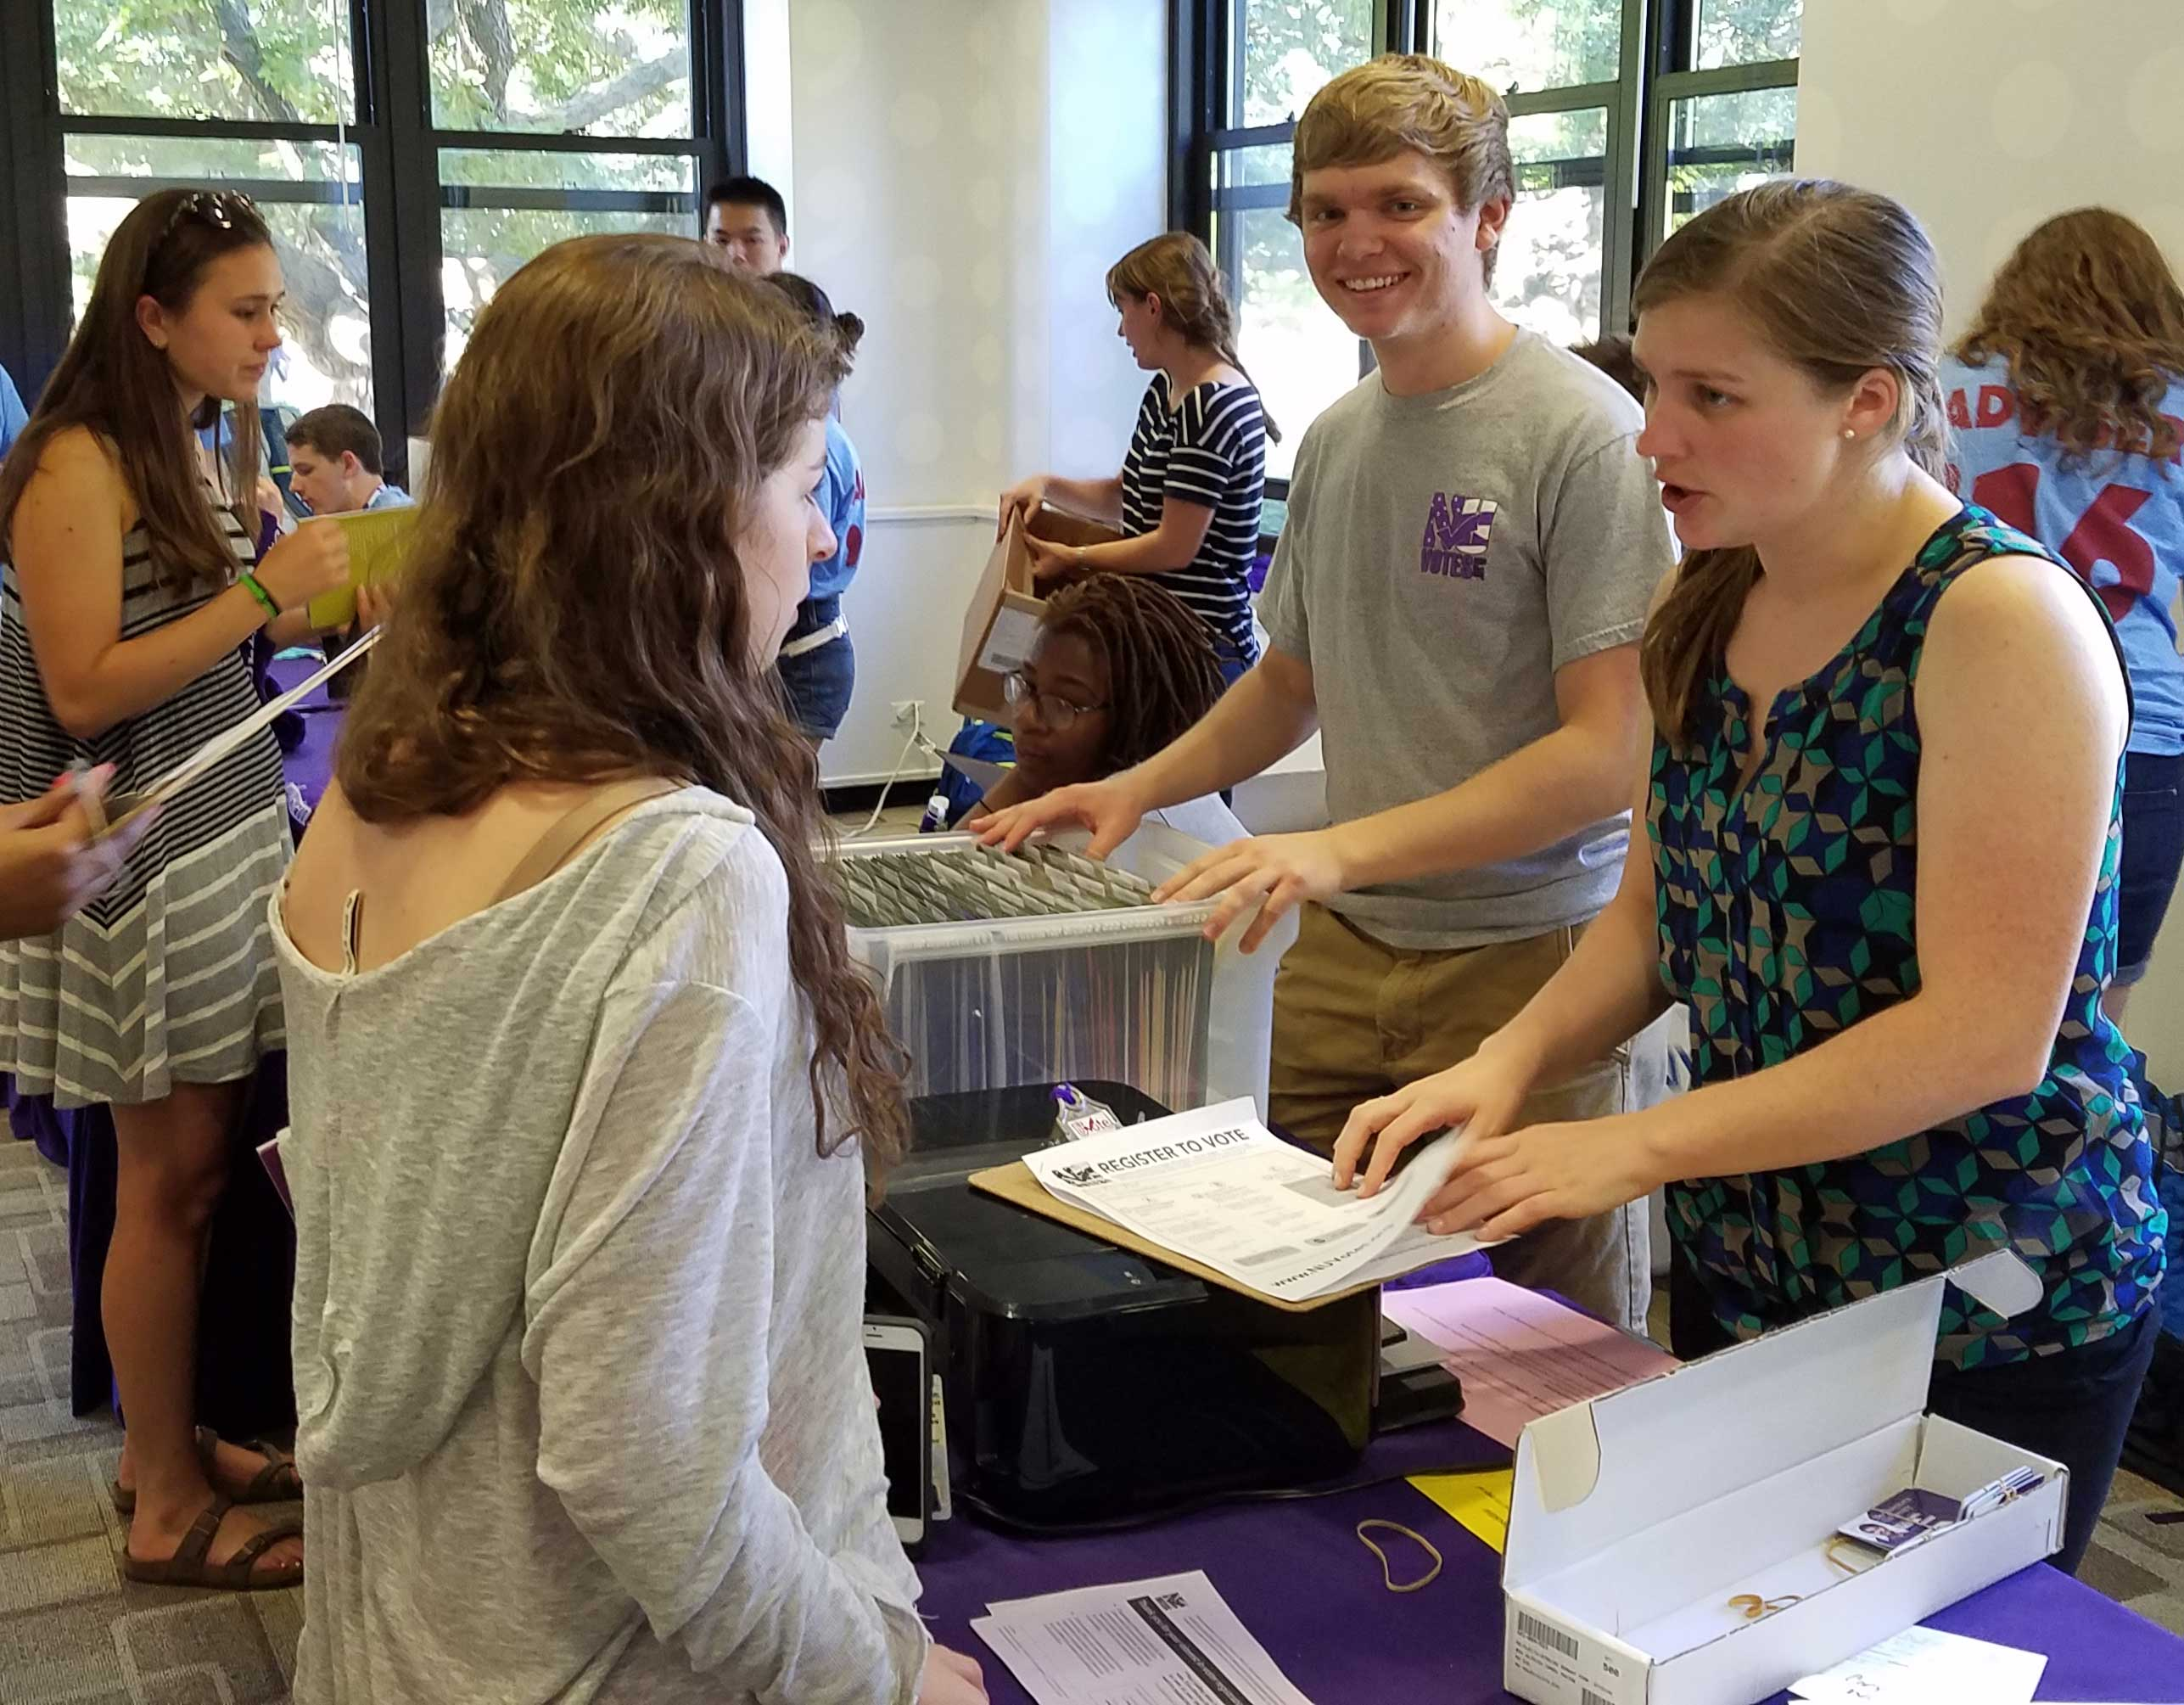 A student registers to vote at Northwestern University during orientation week. This year, 96 percent of incoming freshman have registered. (Courtesy of Robert Donahue)